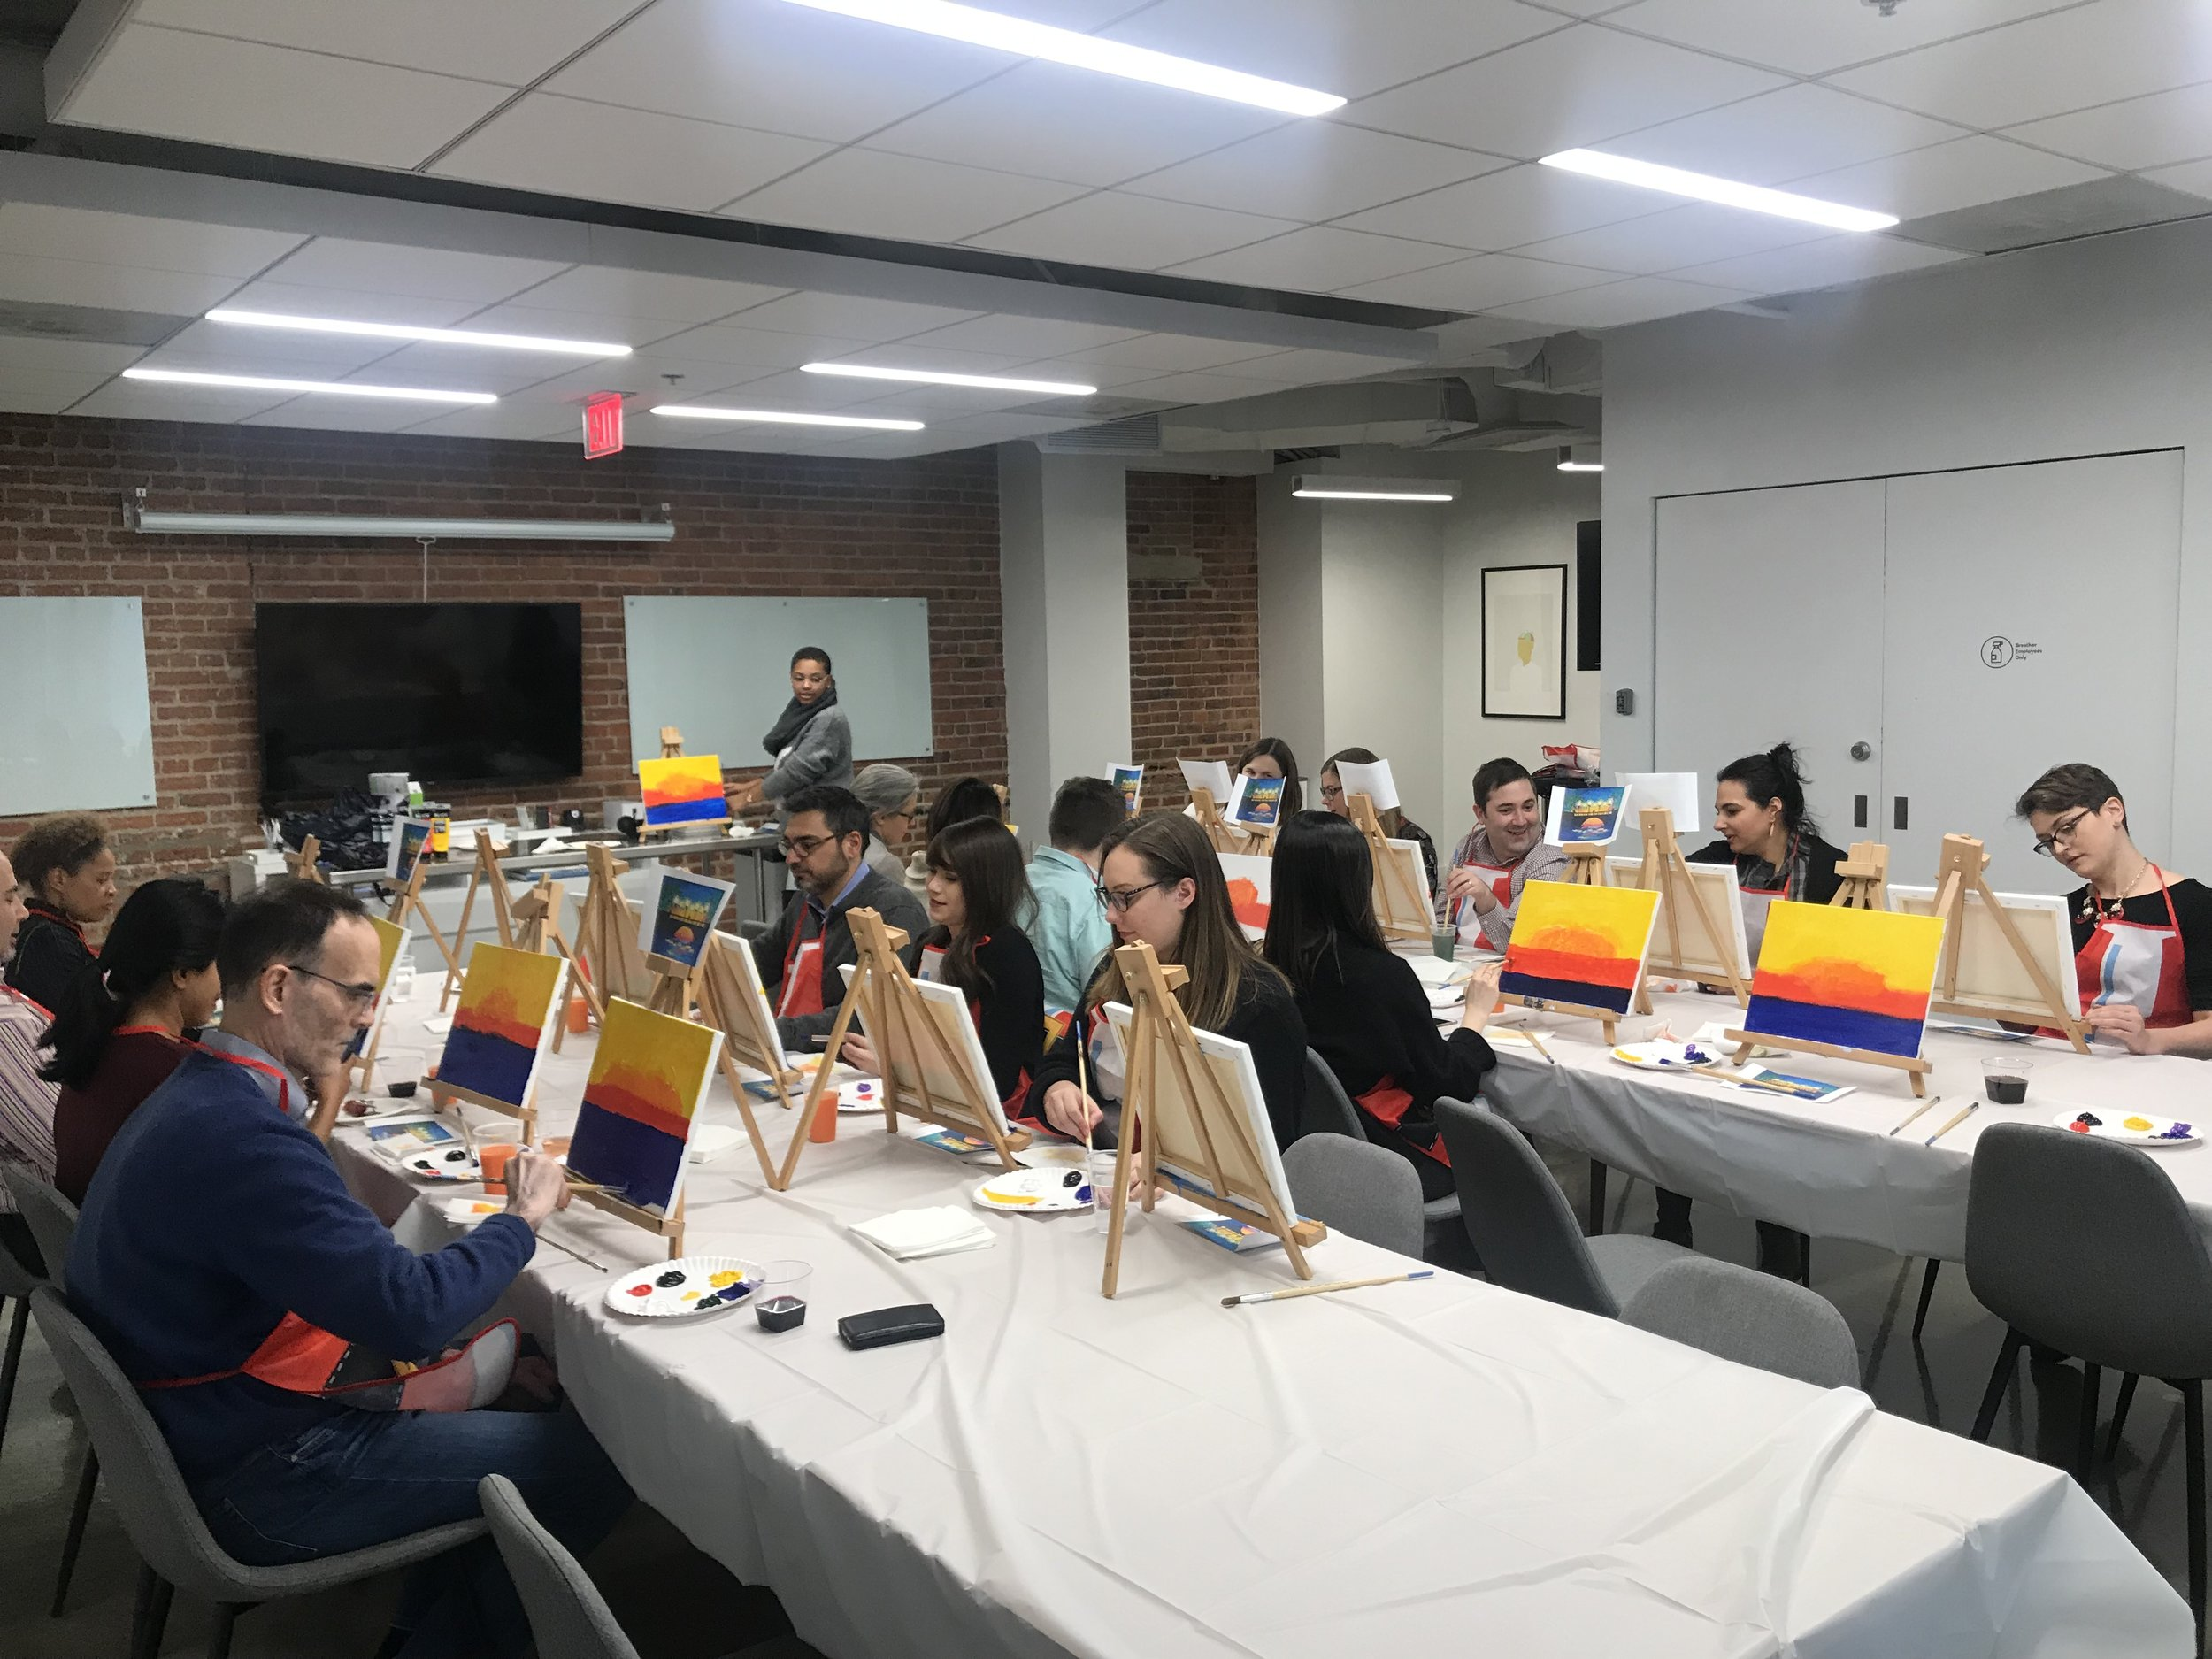 Sip & Paint - Instructor